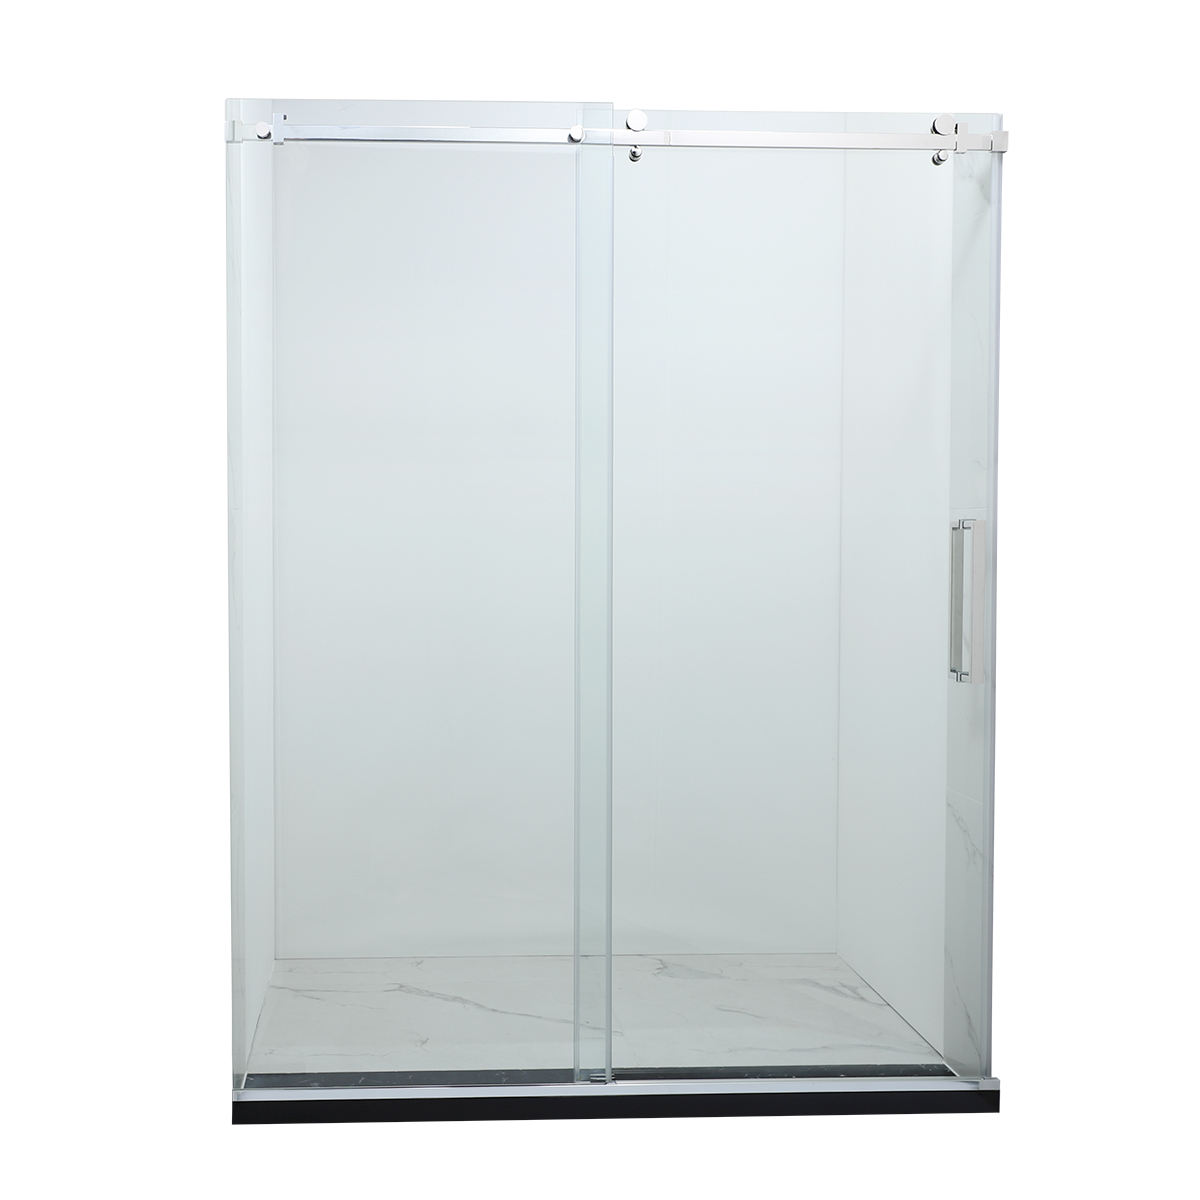 factory direct sale new design high quality bathroom bathtub tempered glass frameless sliding shower door